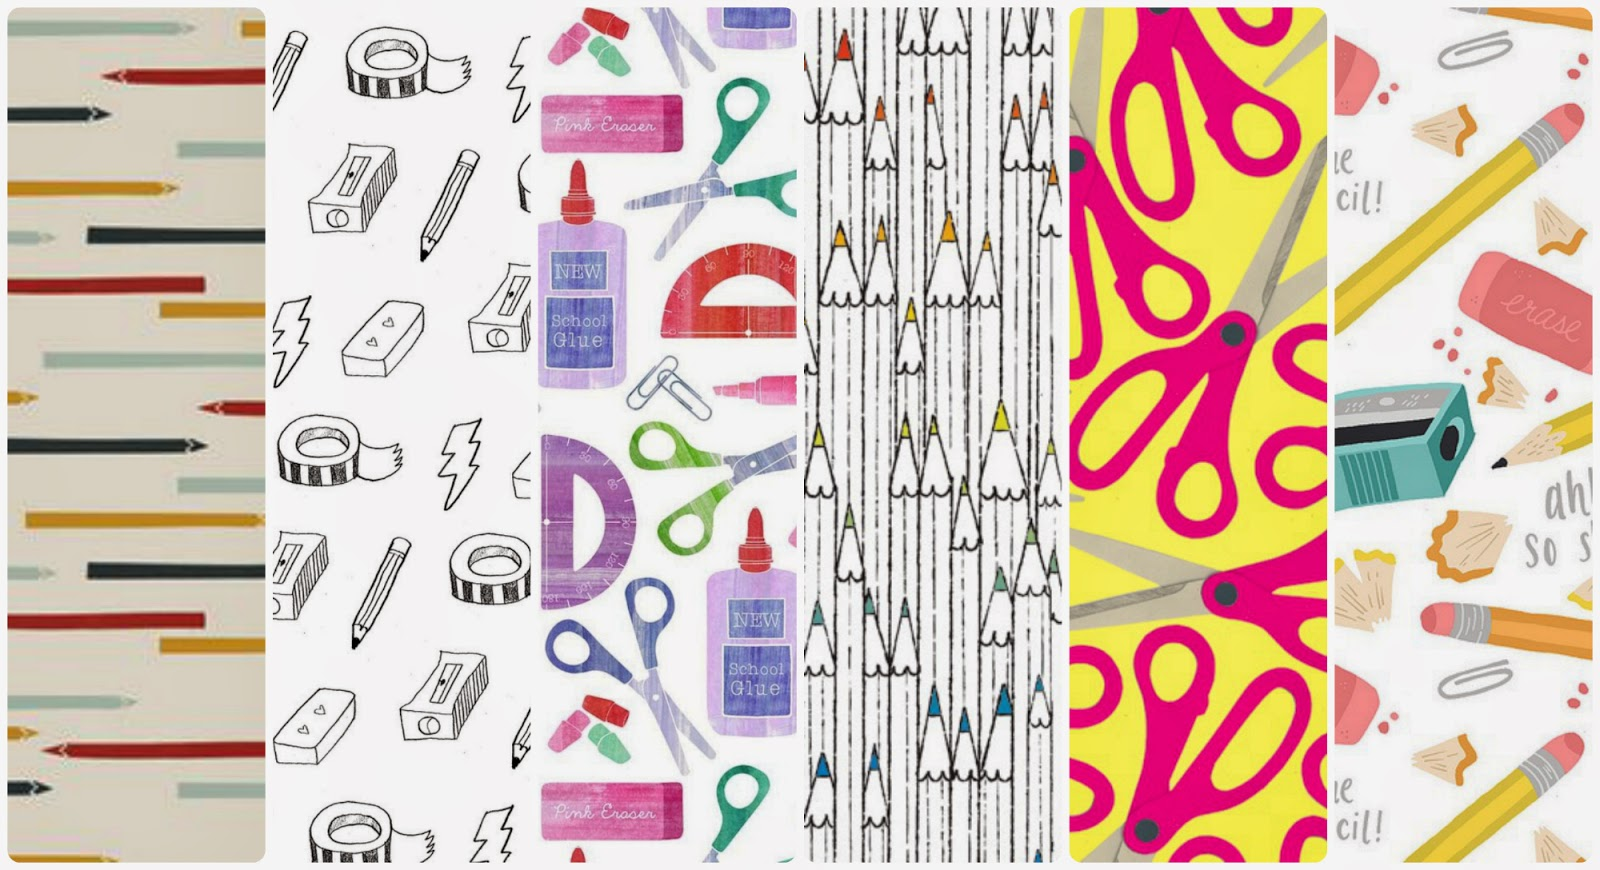 stationery pattern scissors, pencils, rubber fondos de pantalla papelería lápices tijeras gomas sacapuntas colores gratis whatsapp iphone android